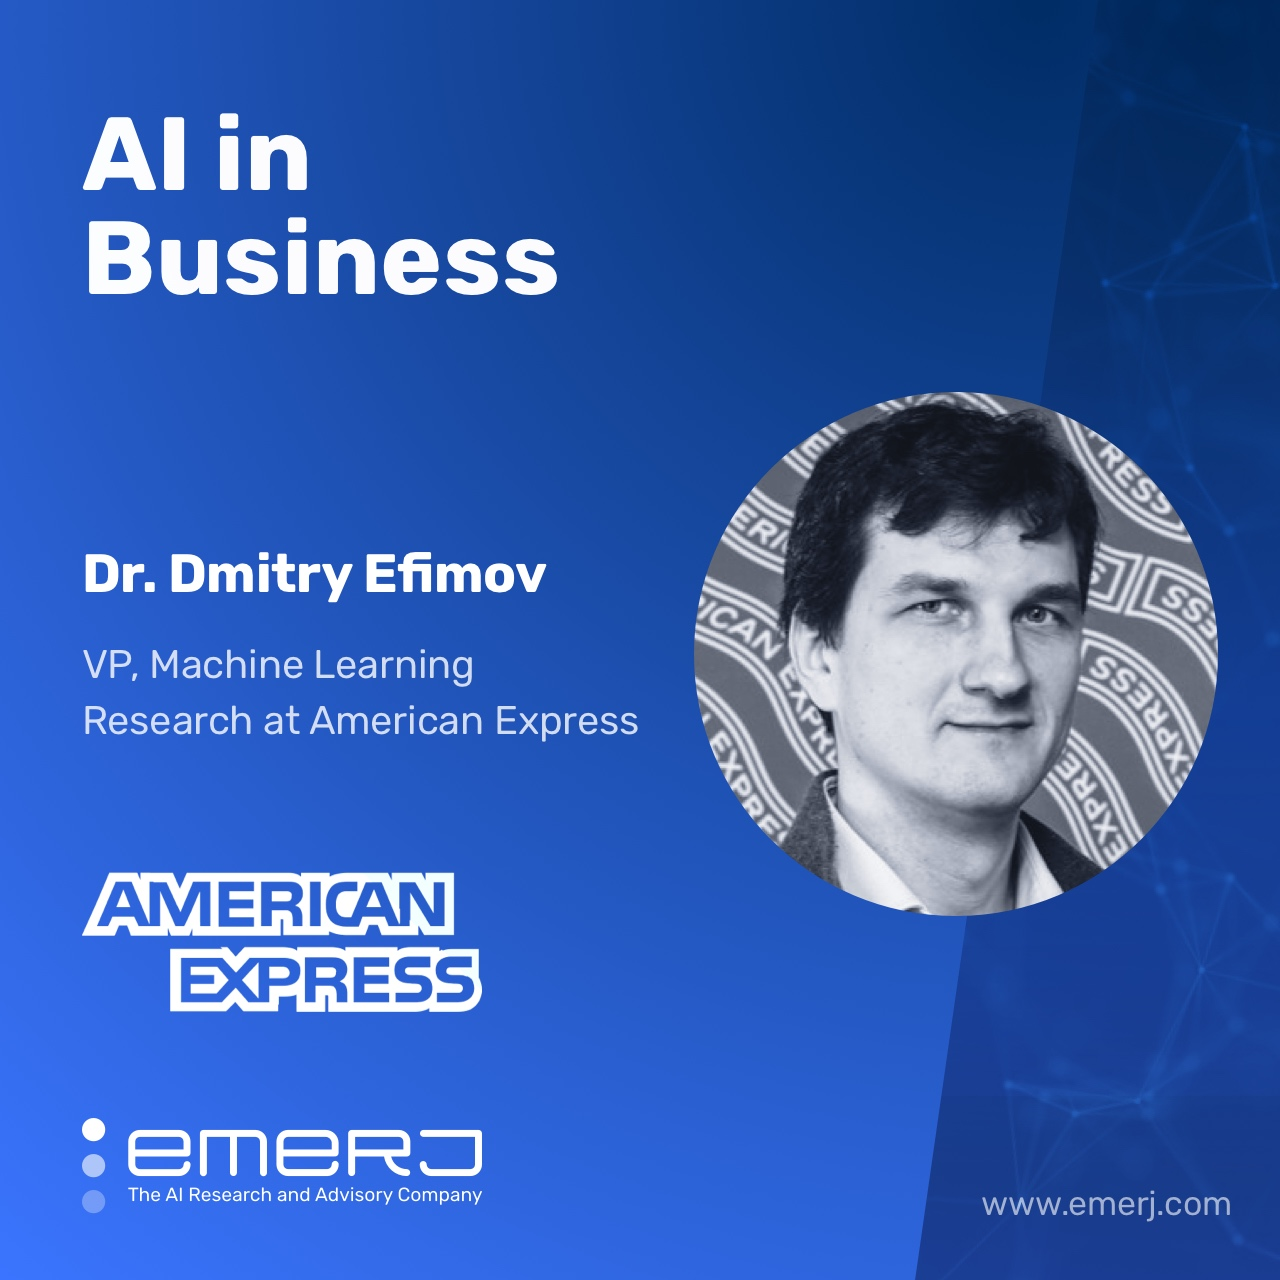 Building AI Teams and Functions in the Enterprise - with Dr. Dmitry Efimov of American Express